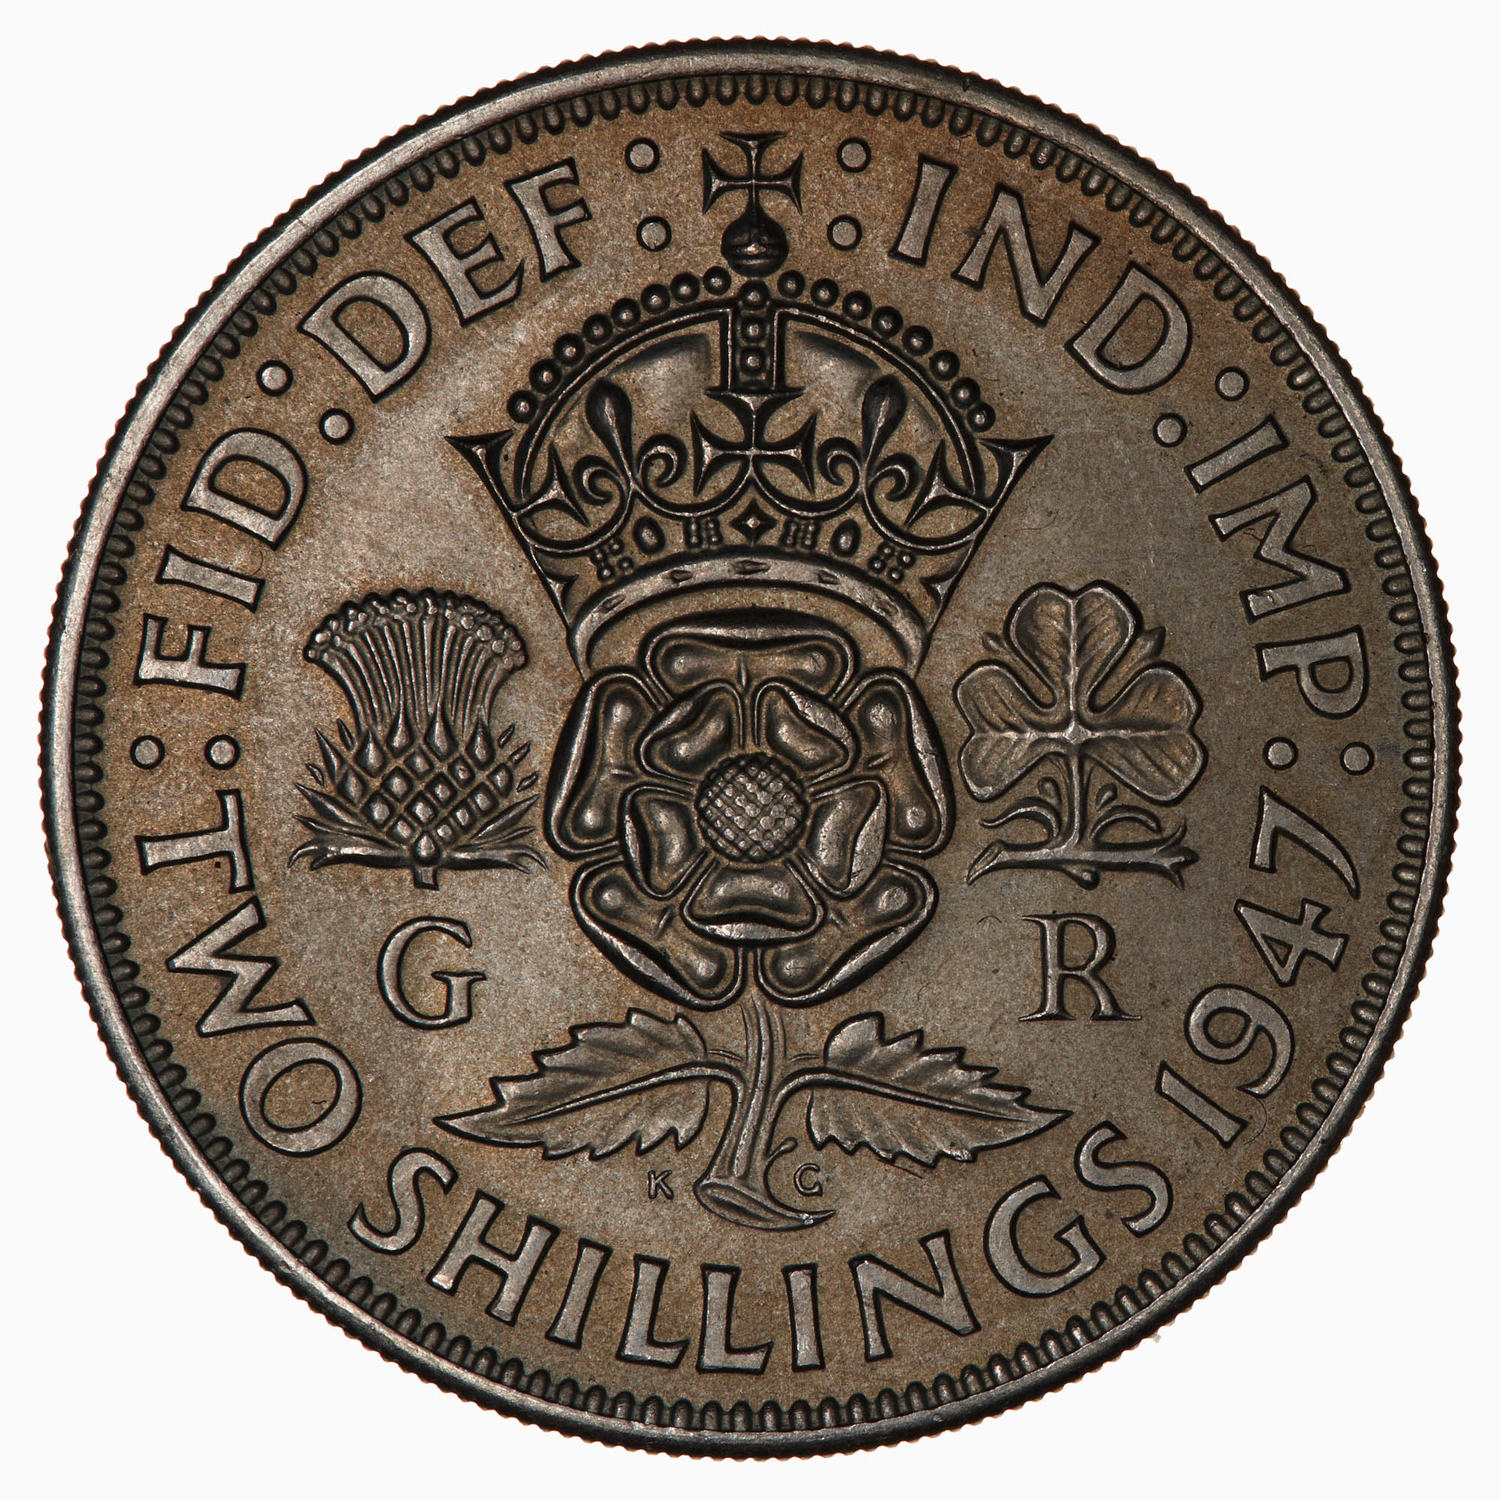 Two Shillings (Florin) 1947: Photo Coin - Florin (2 Shillings), George VI, Great Britain, 1947